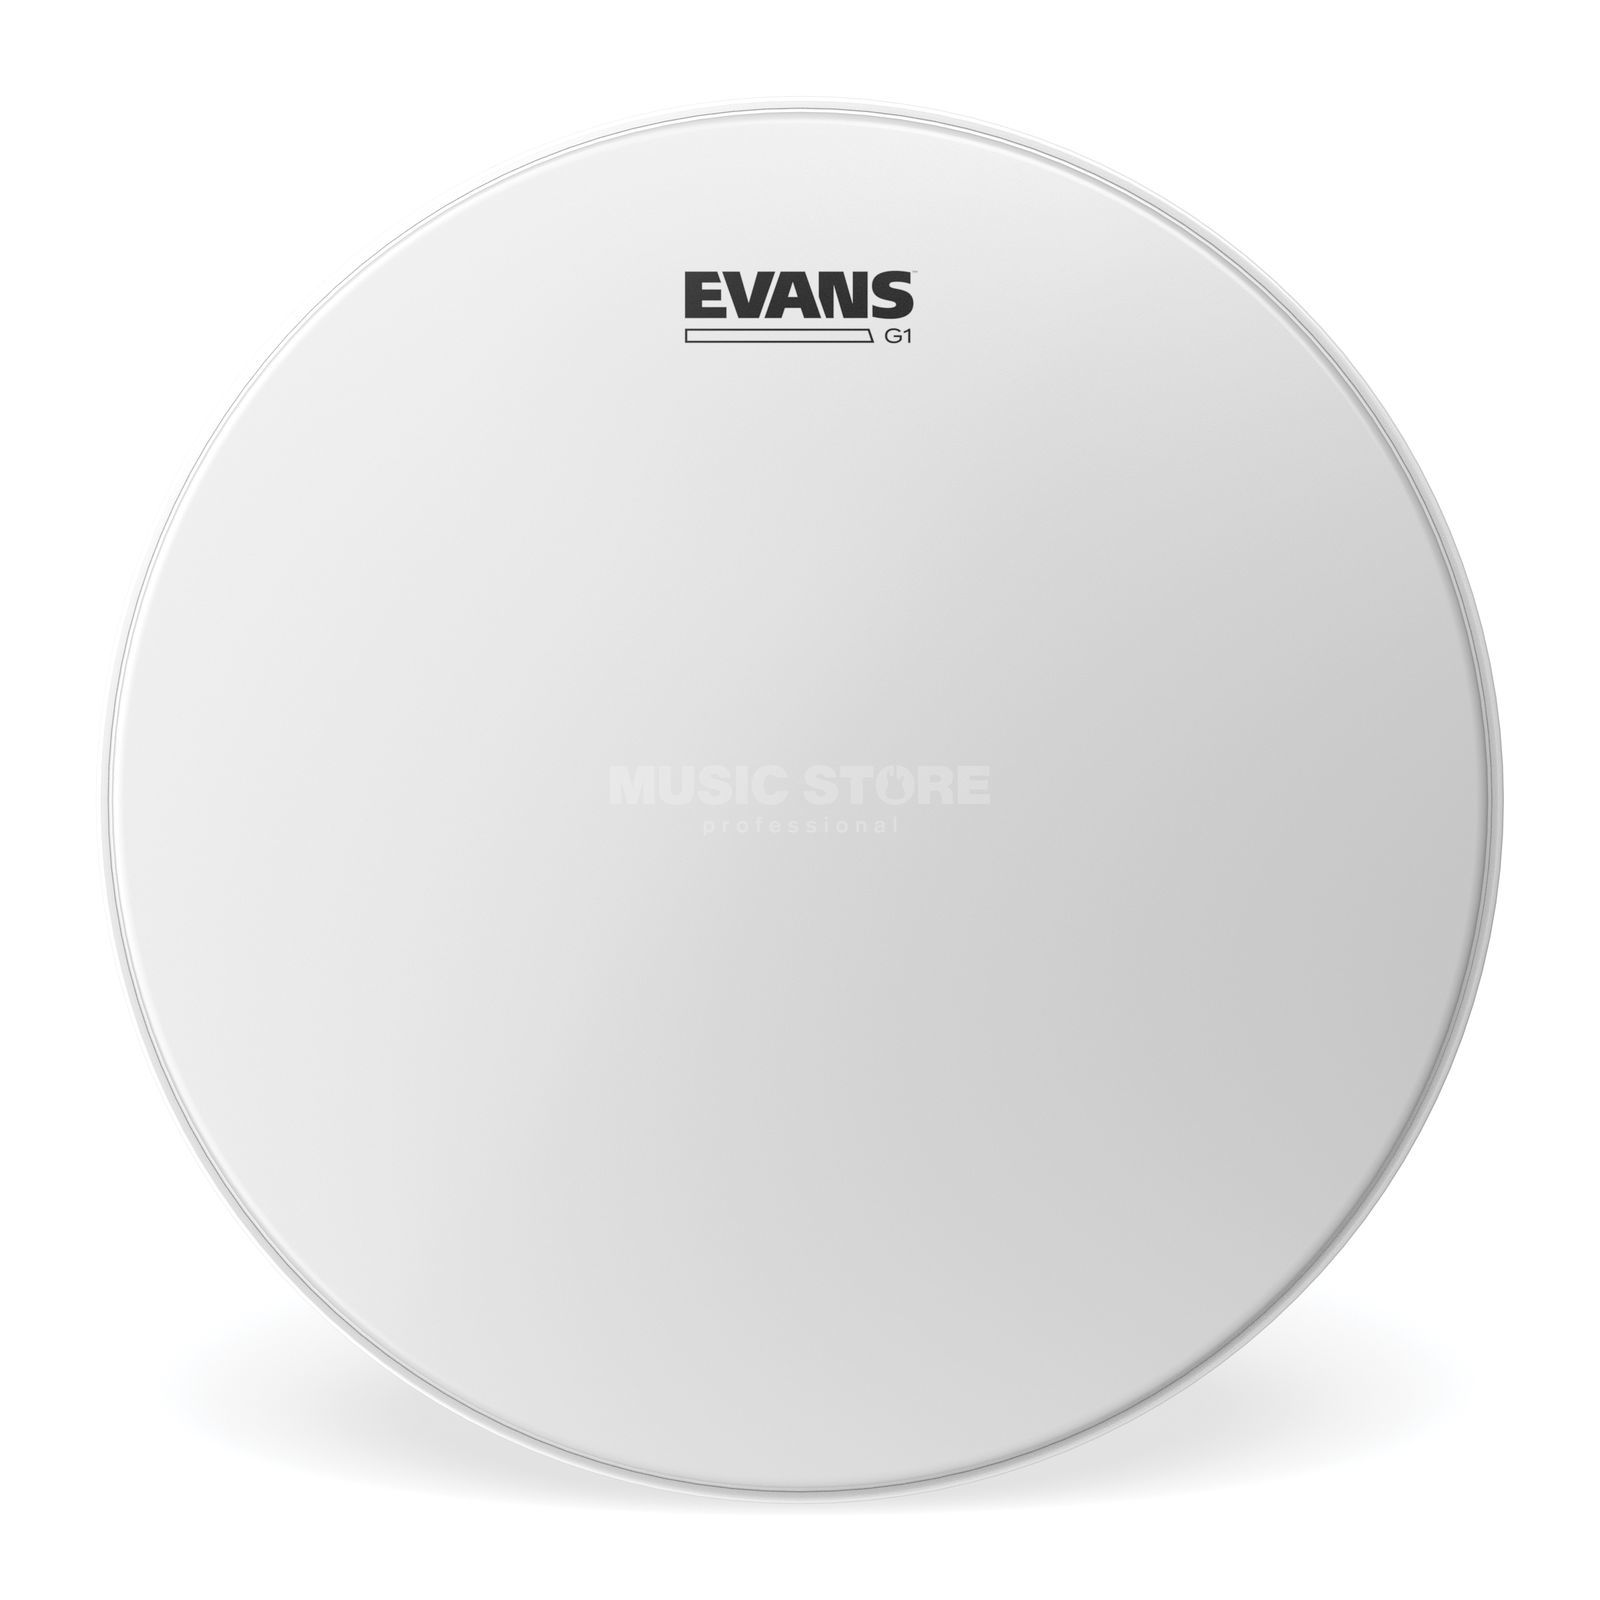 "Evans G1 Coated 18"", B18G1, Tom Batter Produktbild"